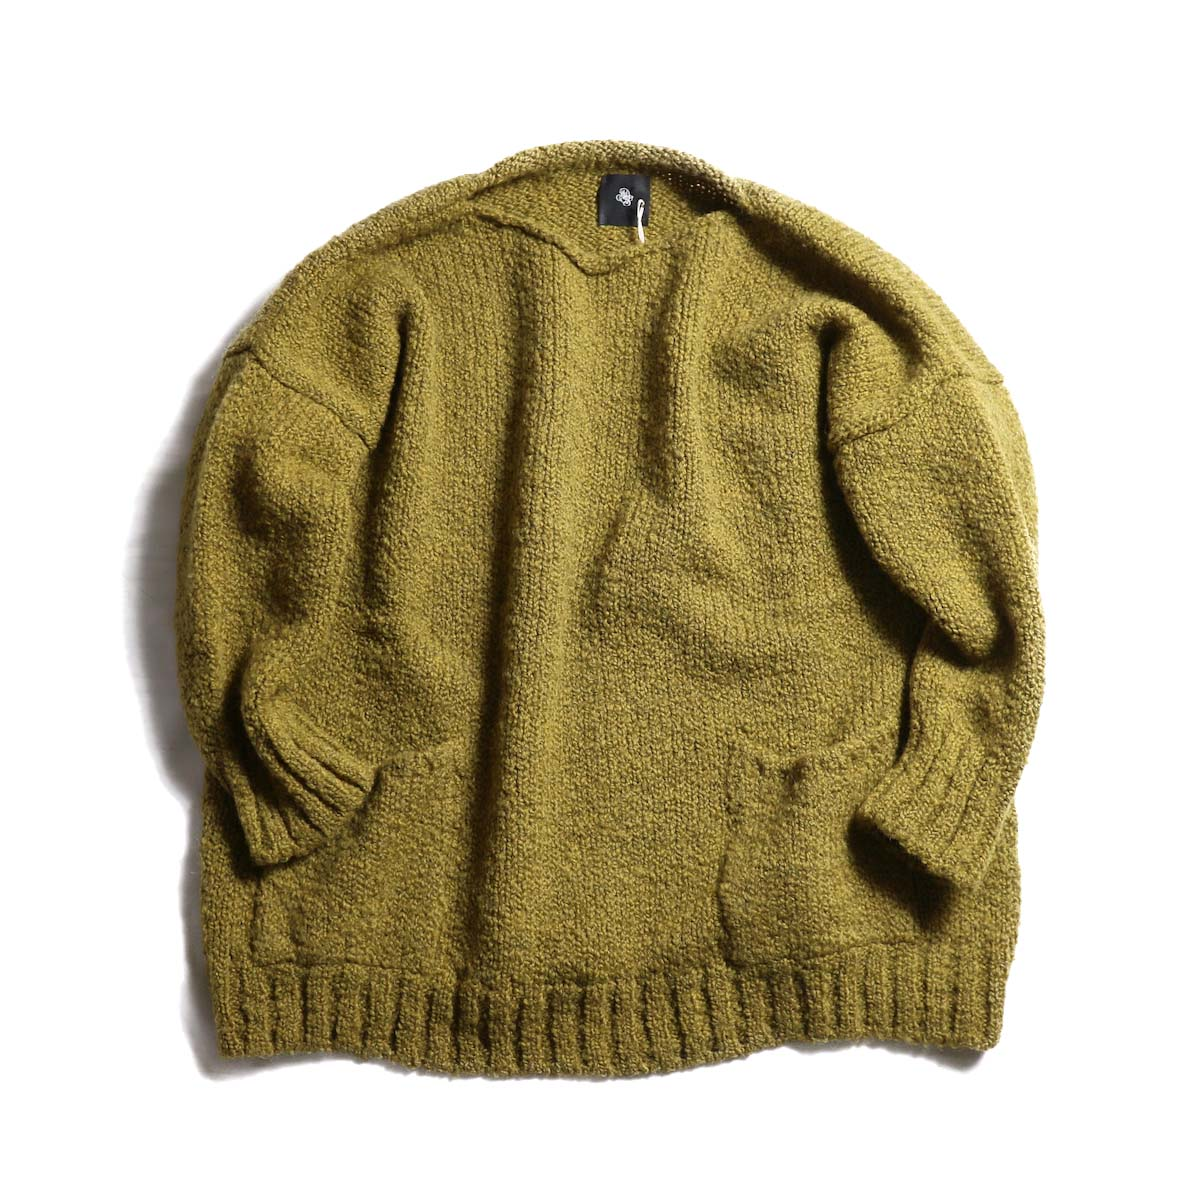 maison de soil / CNMDS1762 Crew Neck Pullover With Pocket -MUSTARD